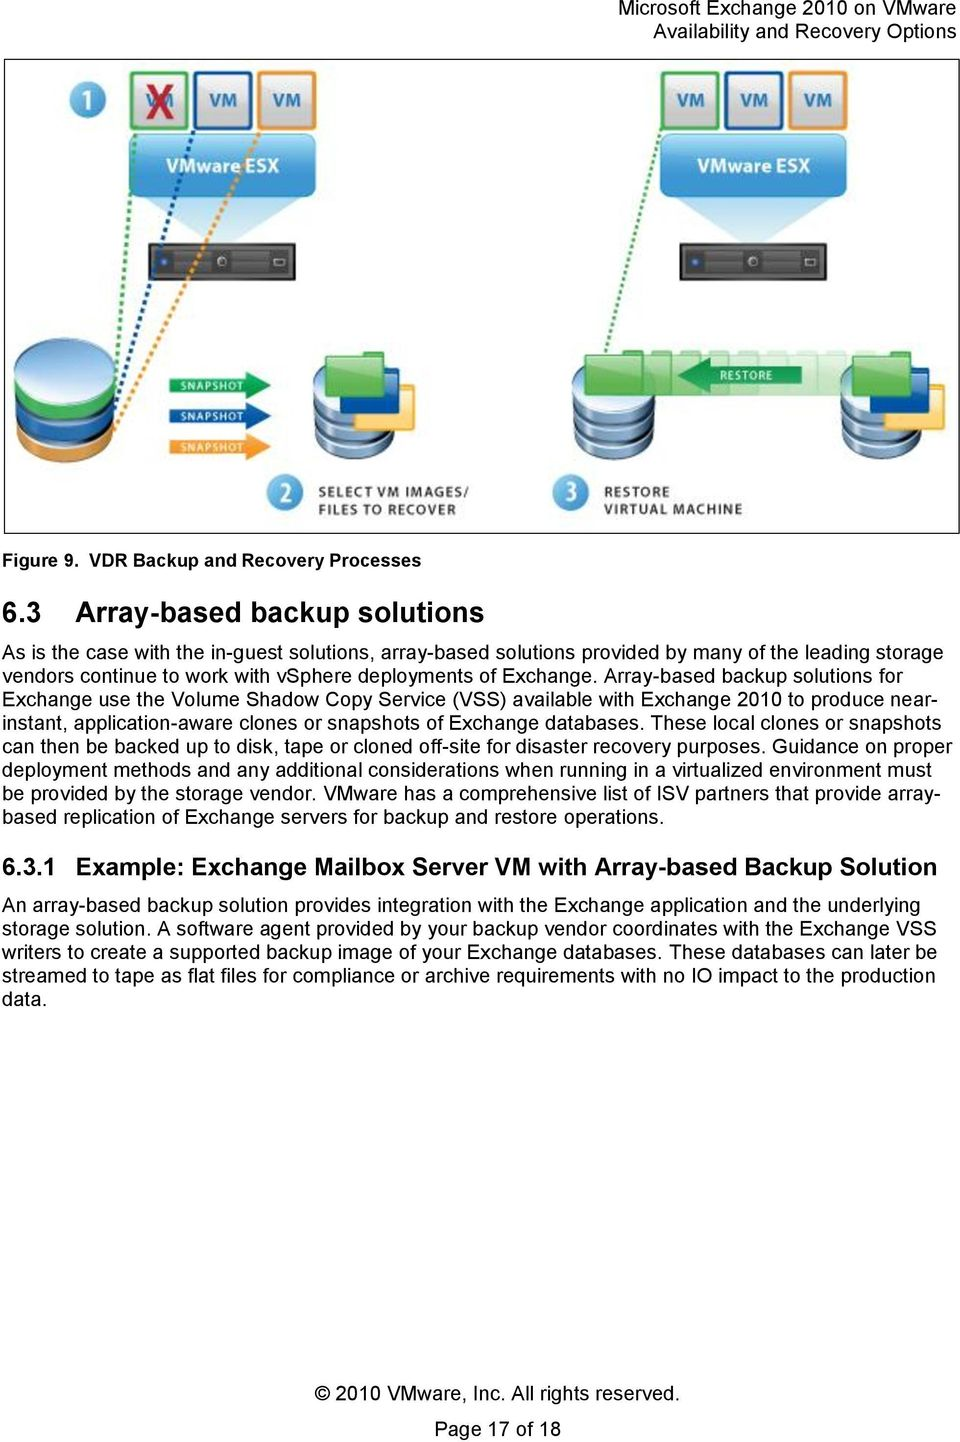 Array-based backup slutins fr Exchange use the Vlume Shadw Cpy Service (VSS) available with Exchange 2010 t prduce nearinstant, applicatin-aware clnes r snapshts f Exchange databases.